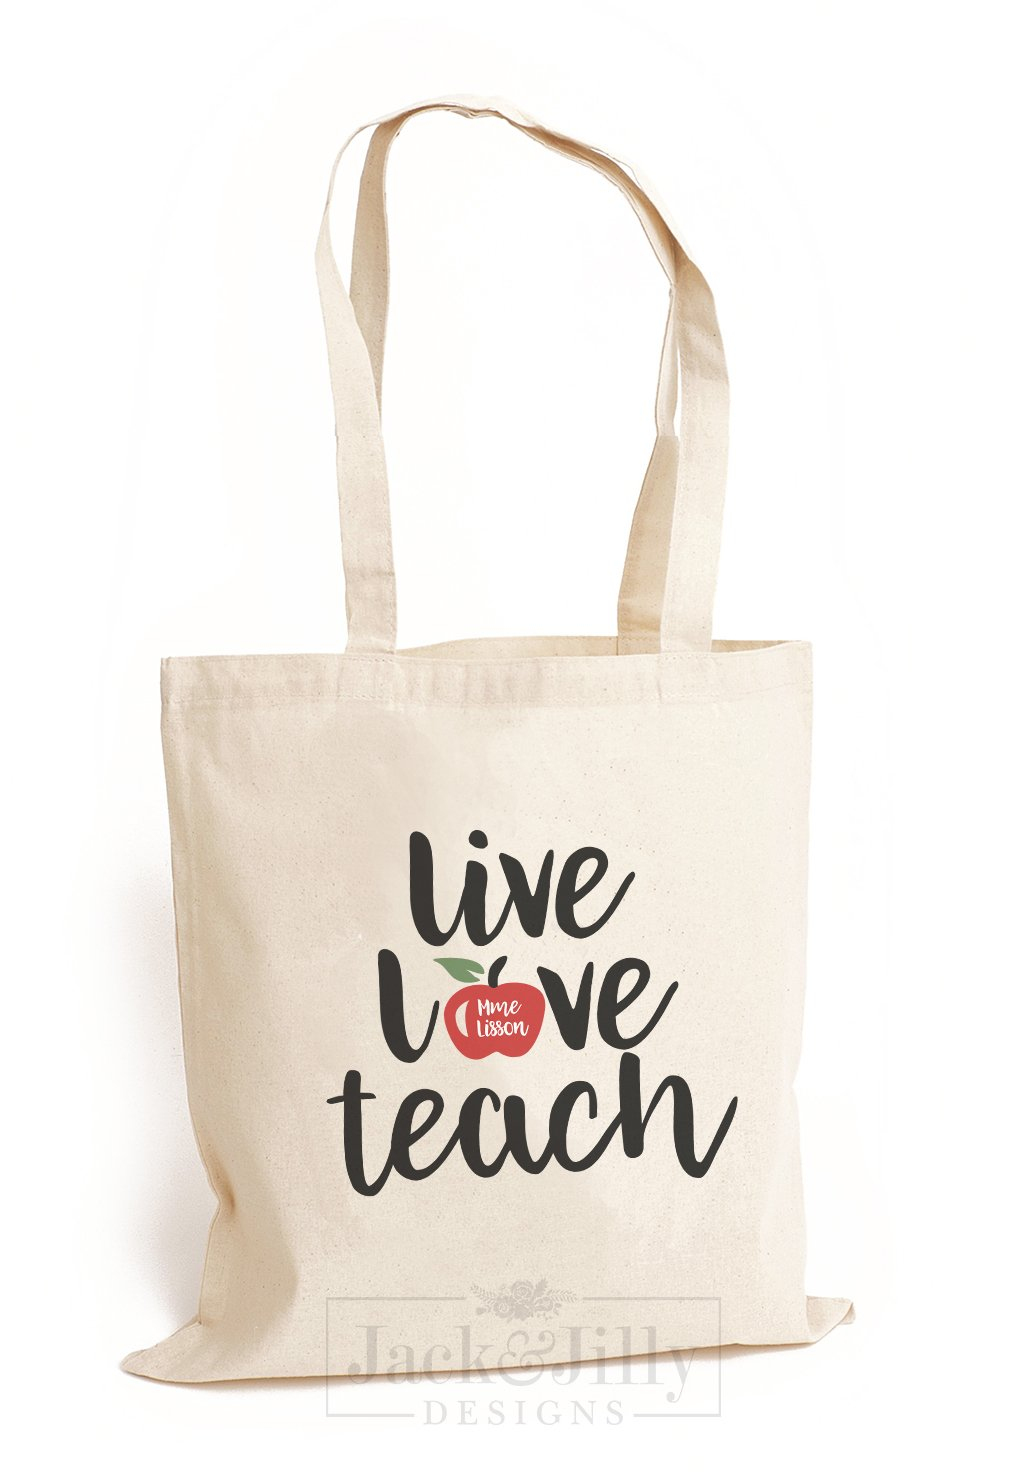 Personalized Teacher Tote Bag Over 12 Designs Jack